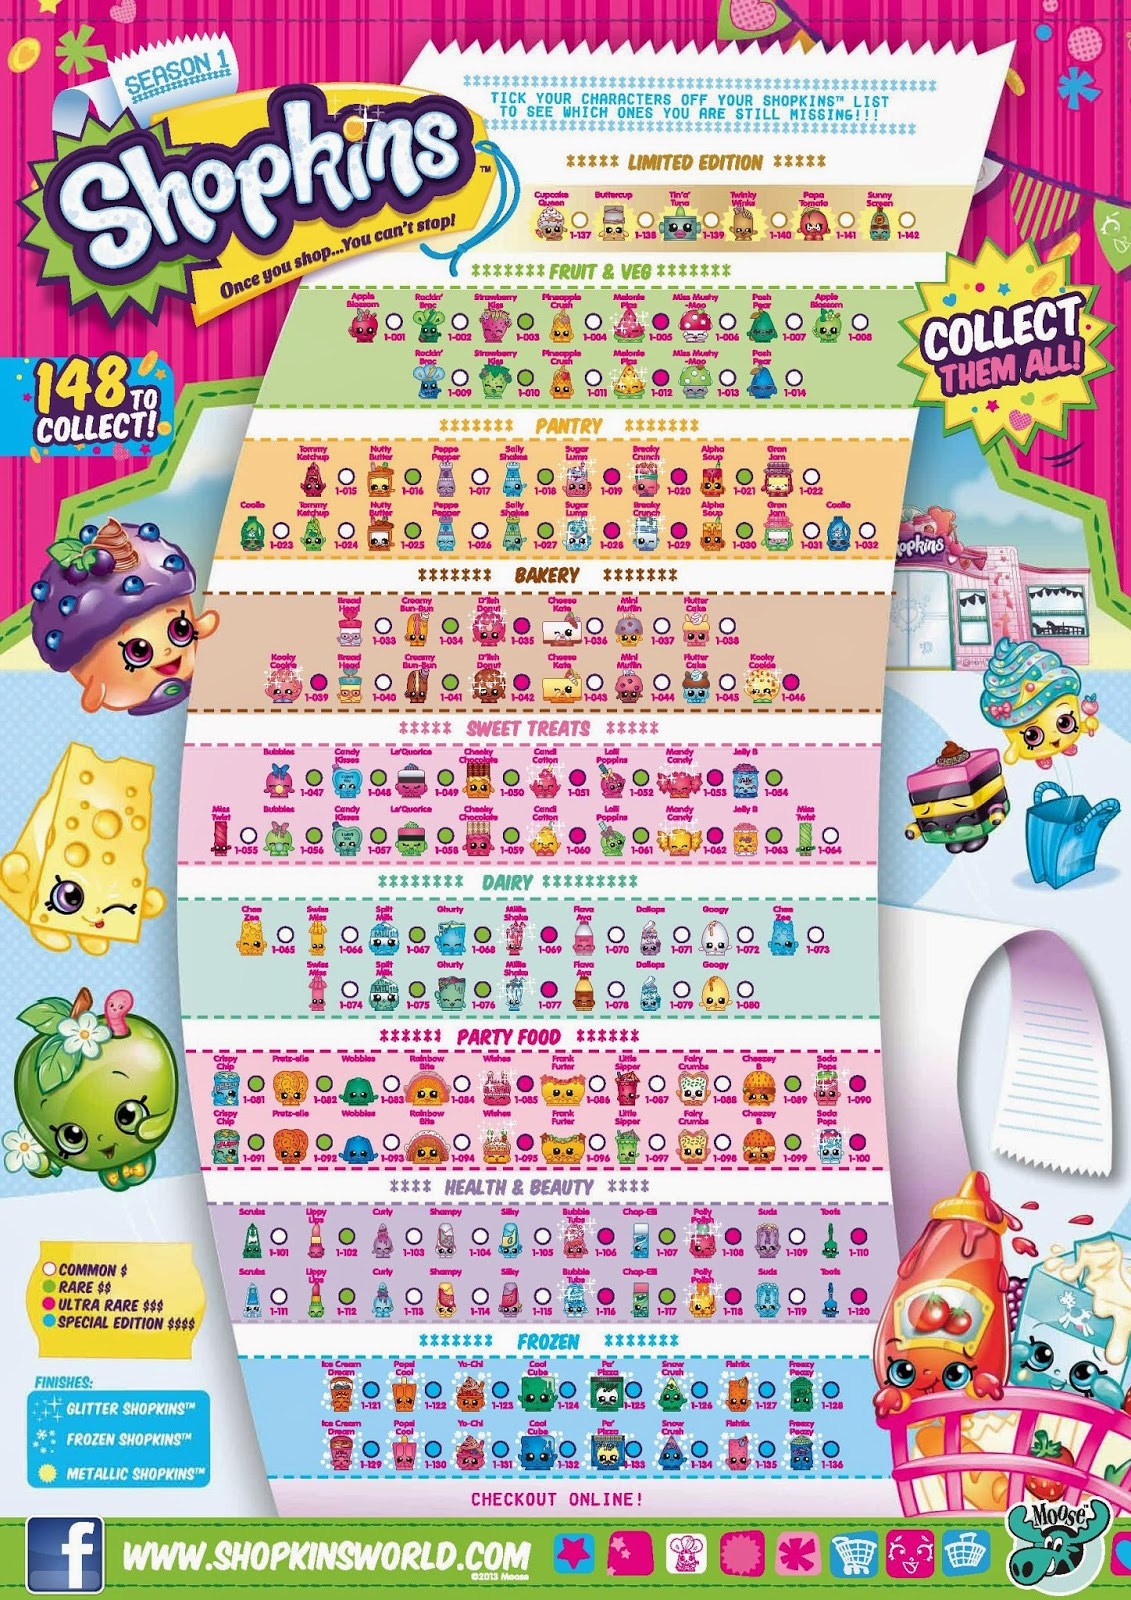 Slobbery image intended for shopkins checklist printable